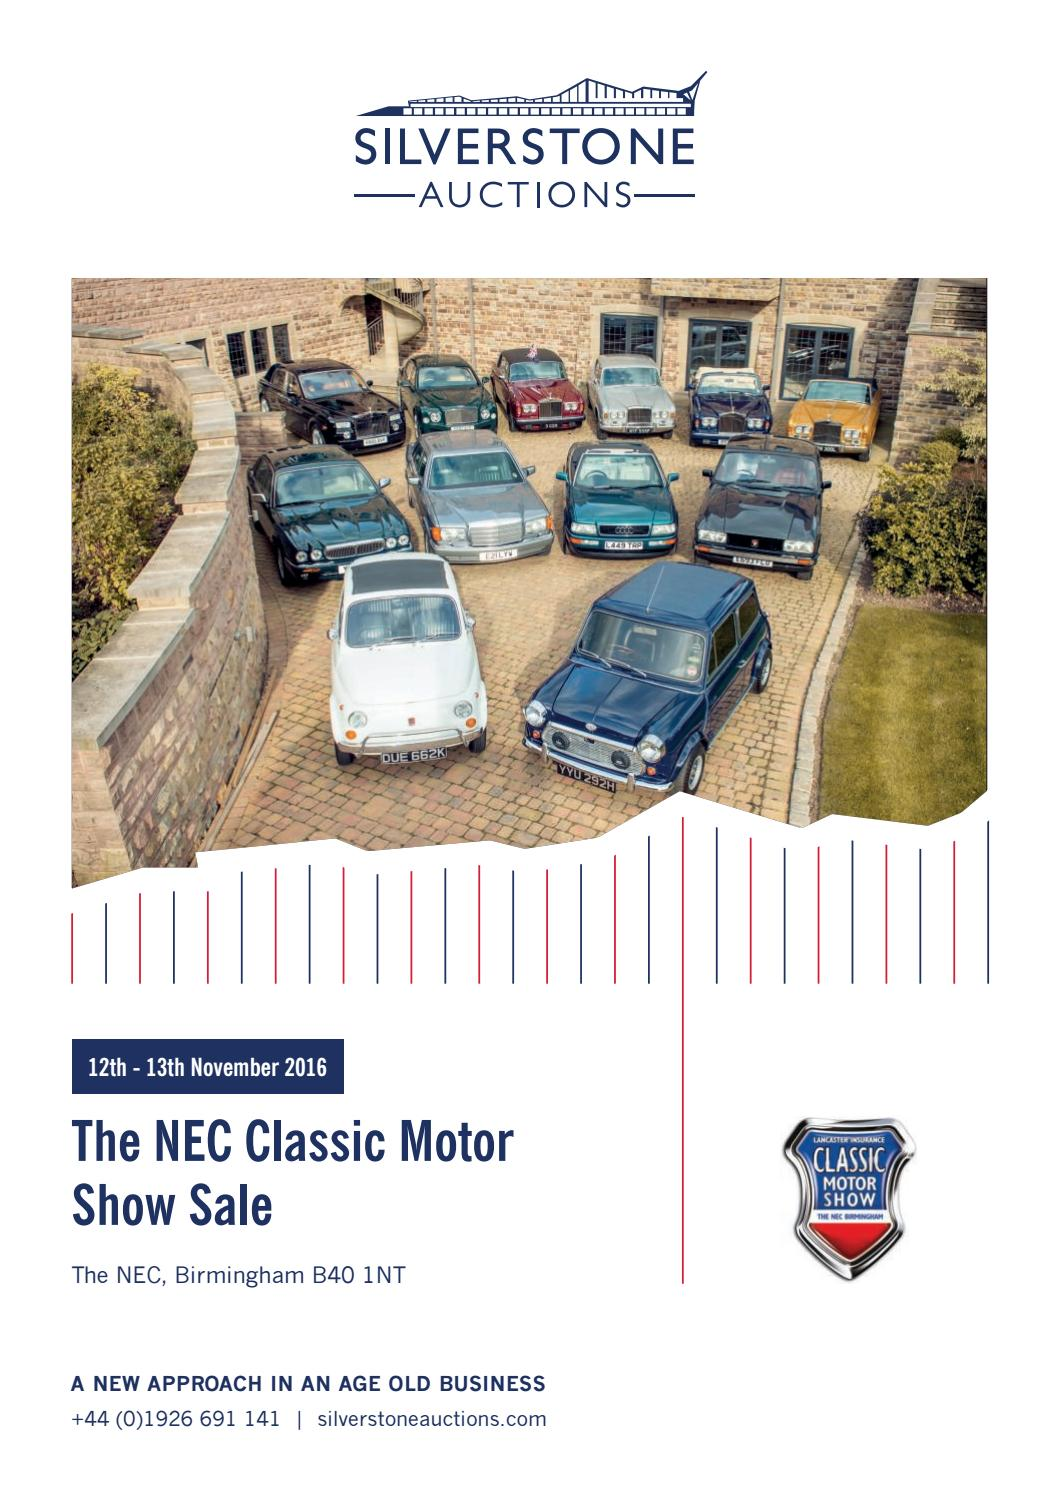 Silverstone Auctions The NEC Classic Motor Show Sale 12th to 13th November  2016 by Silverstone Auctions - issuu